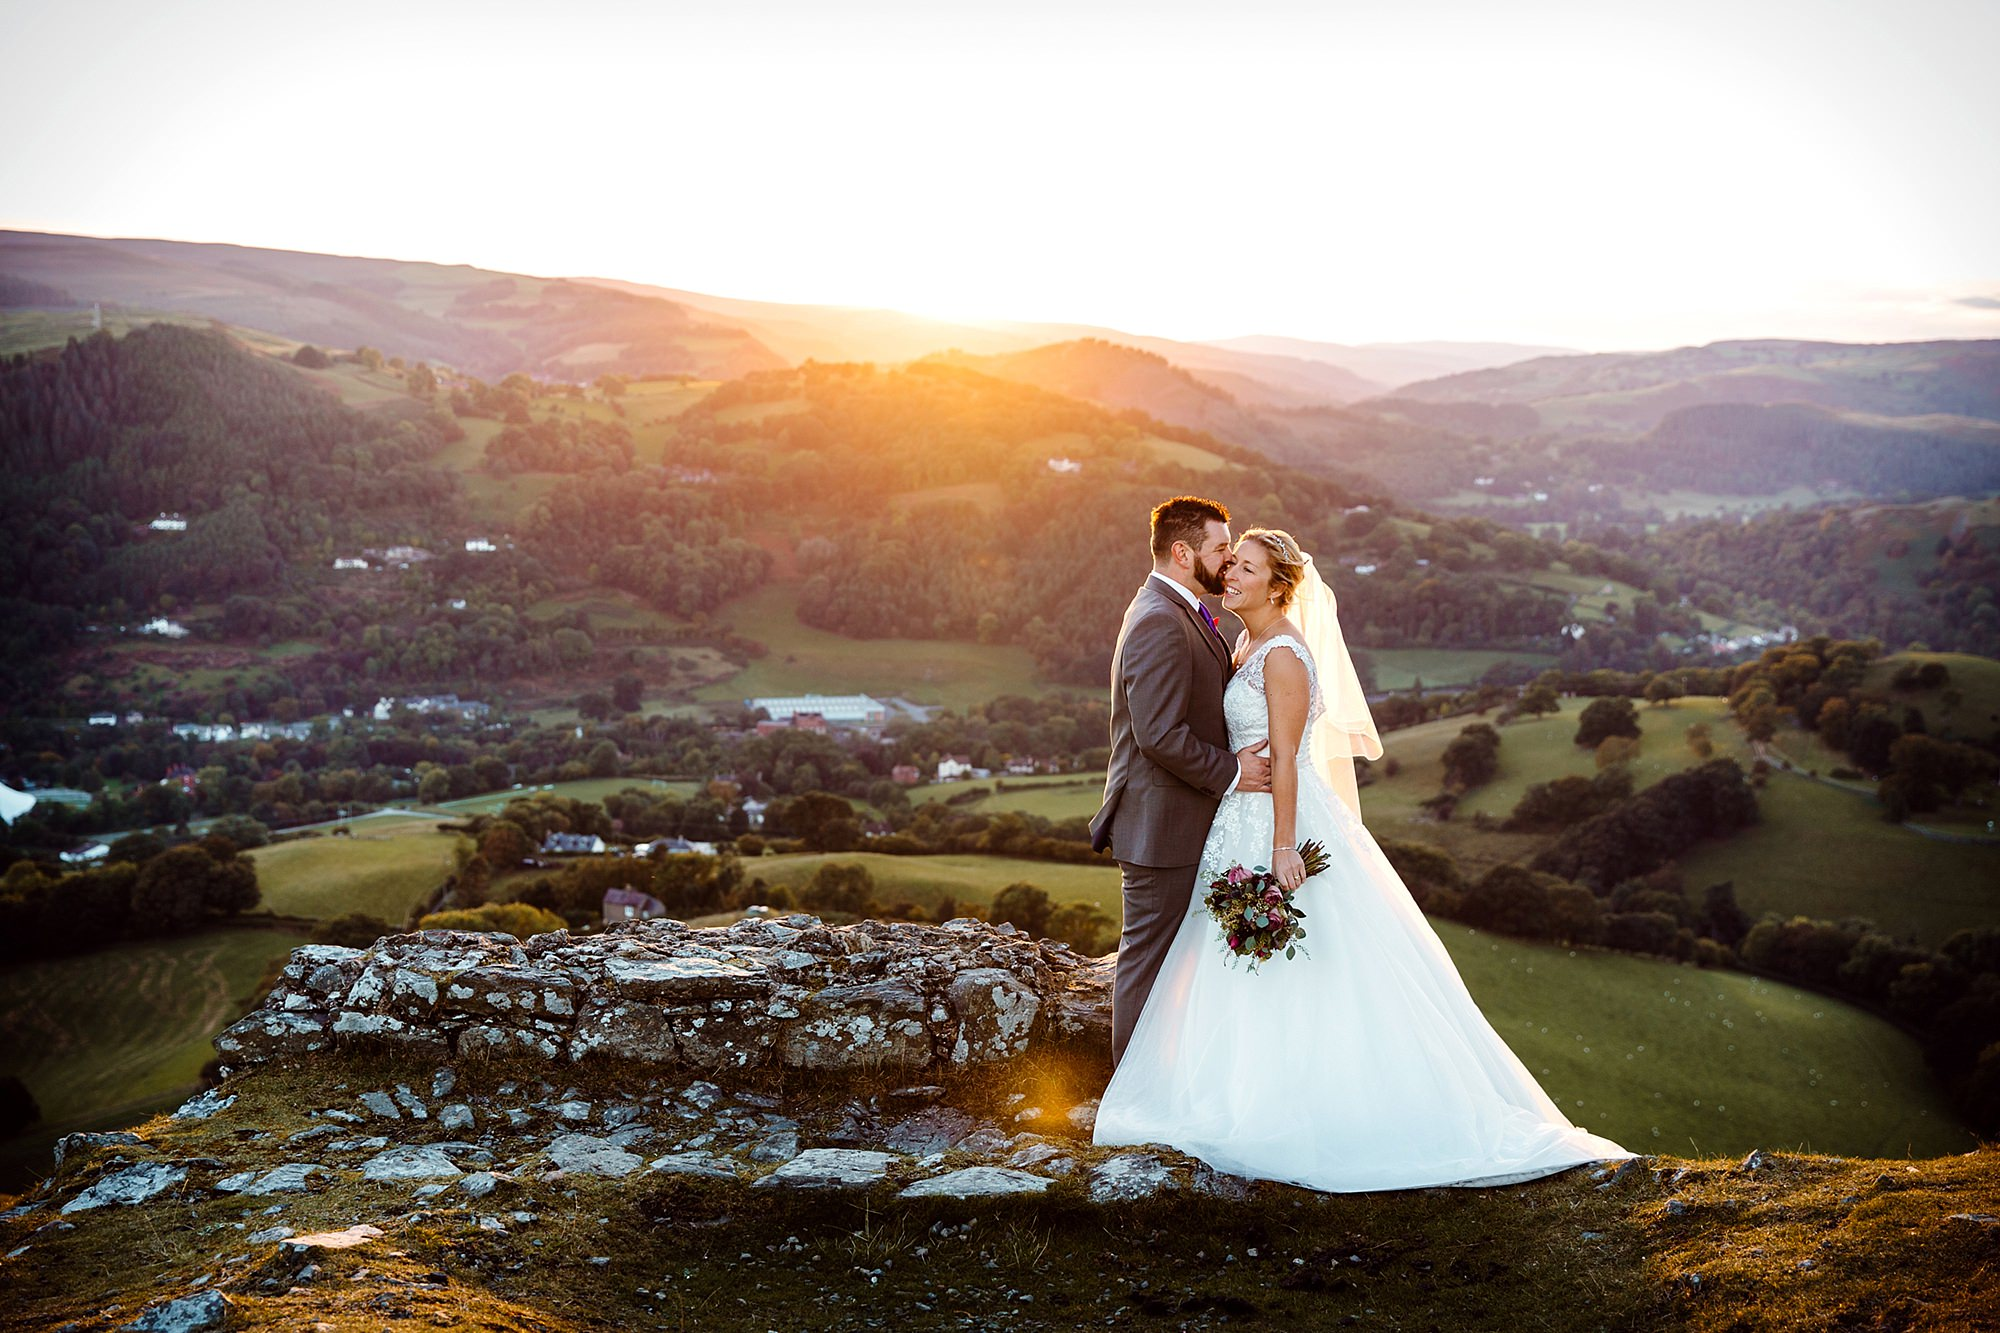 Castell dinas bran wedding photography portrait of bride and groom laughing at ruins at sunset